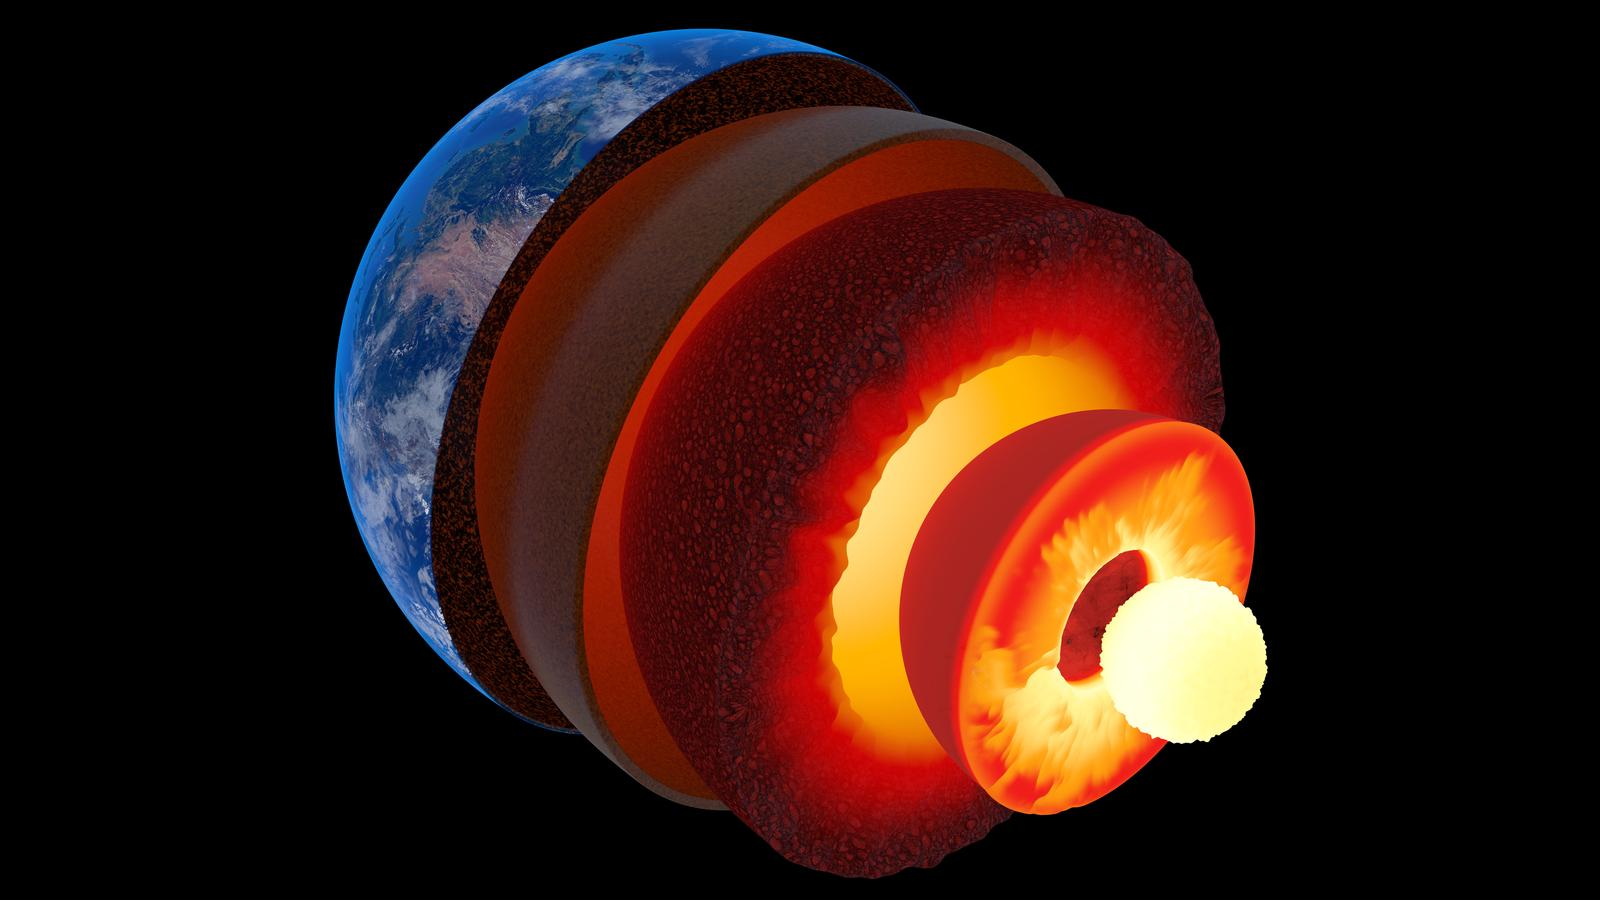 Earth core structure illustrated with geological layers according to scale - isolated on black (Texture maps from NASA)